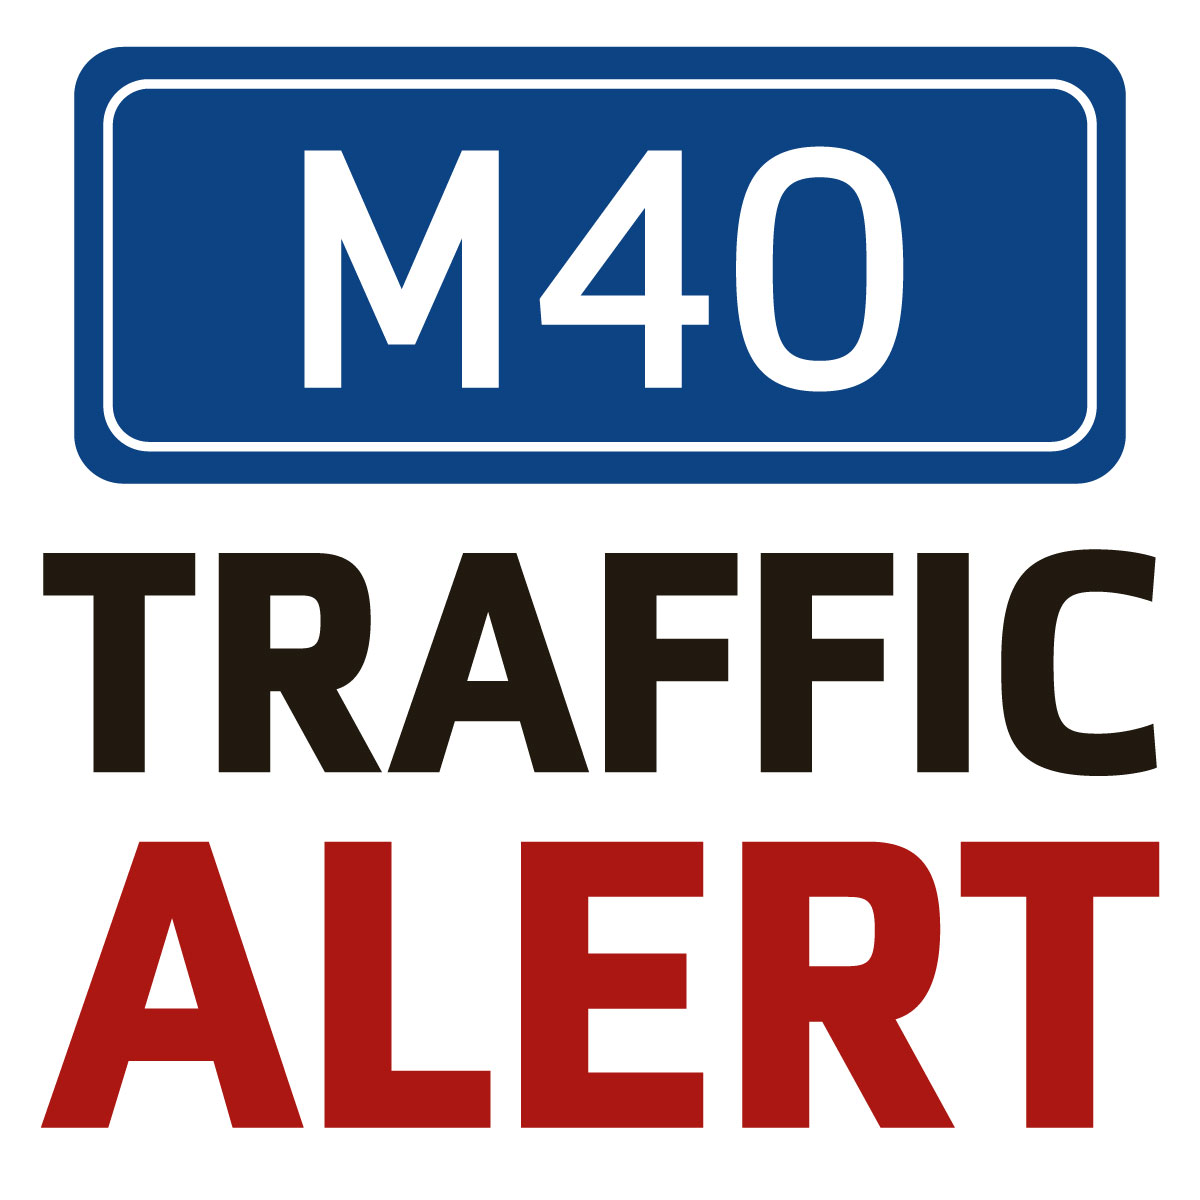 M40 closed Northbound between Oxford and Bicester due to police incident